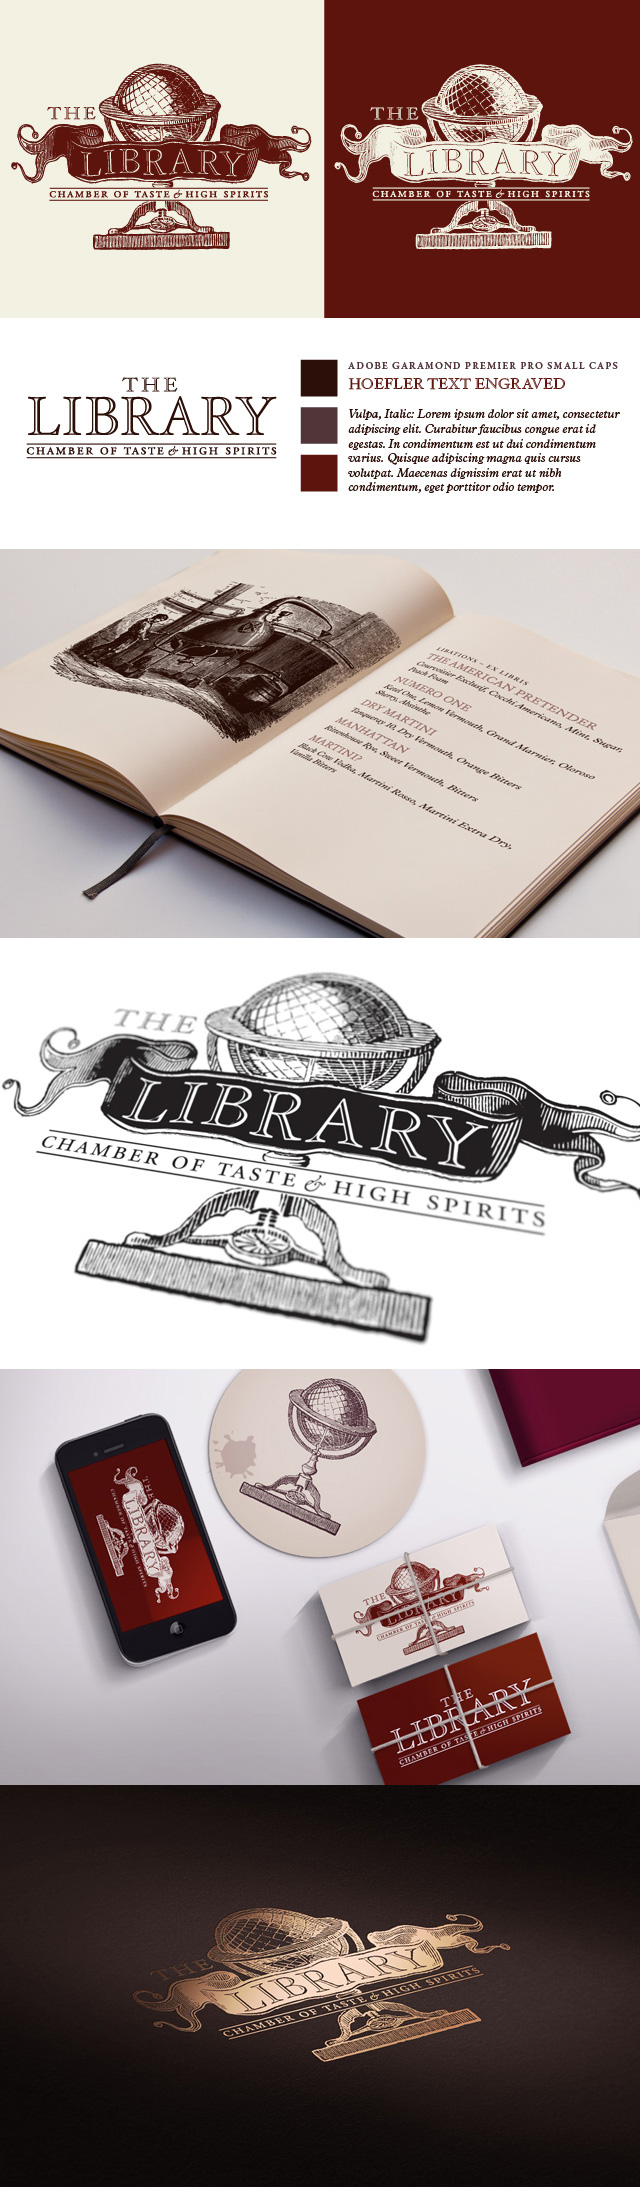 Logo Design: The Library